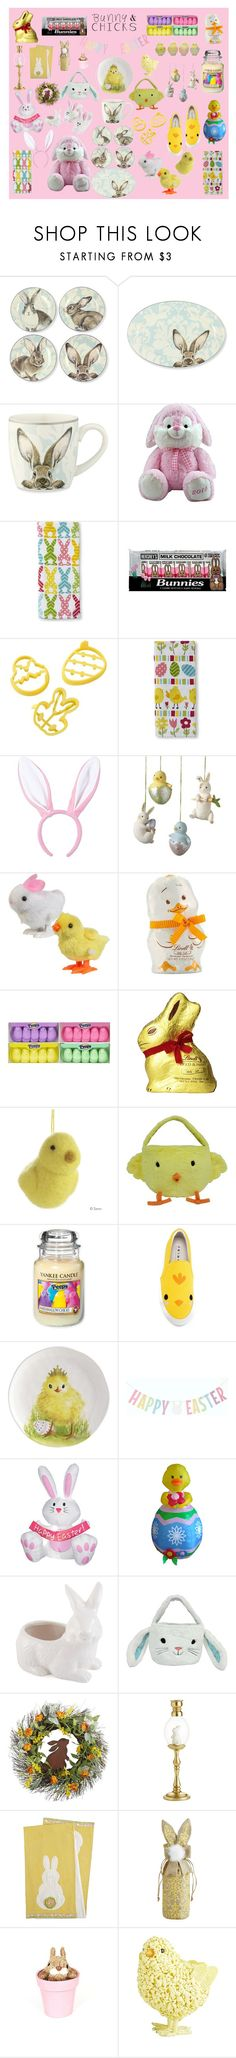 """""""Bunnies & Chicks"""" by deannastraub ❤ liked on Polyvore featuring interior, interiors, interior design, home, home decor, interior decorating, Williams-Sonoma, Hershey's, Lindt and John Lewis"""